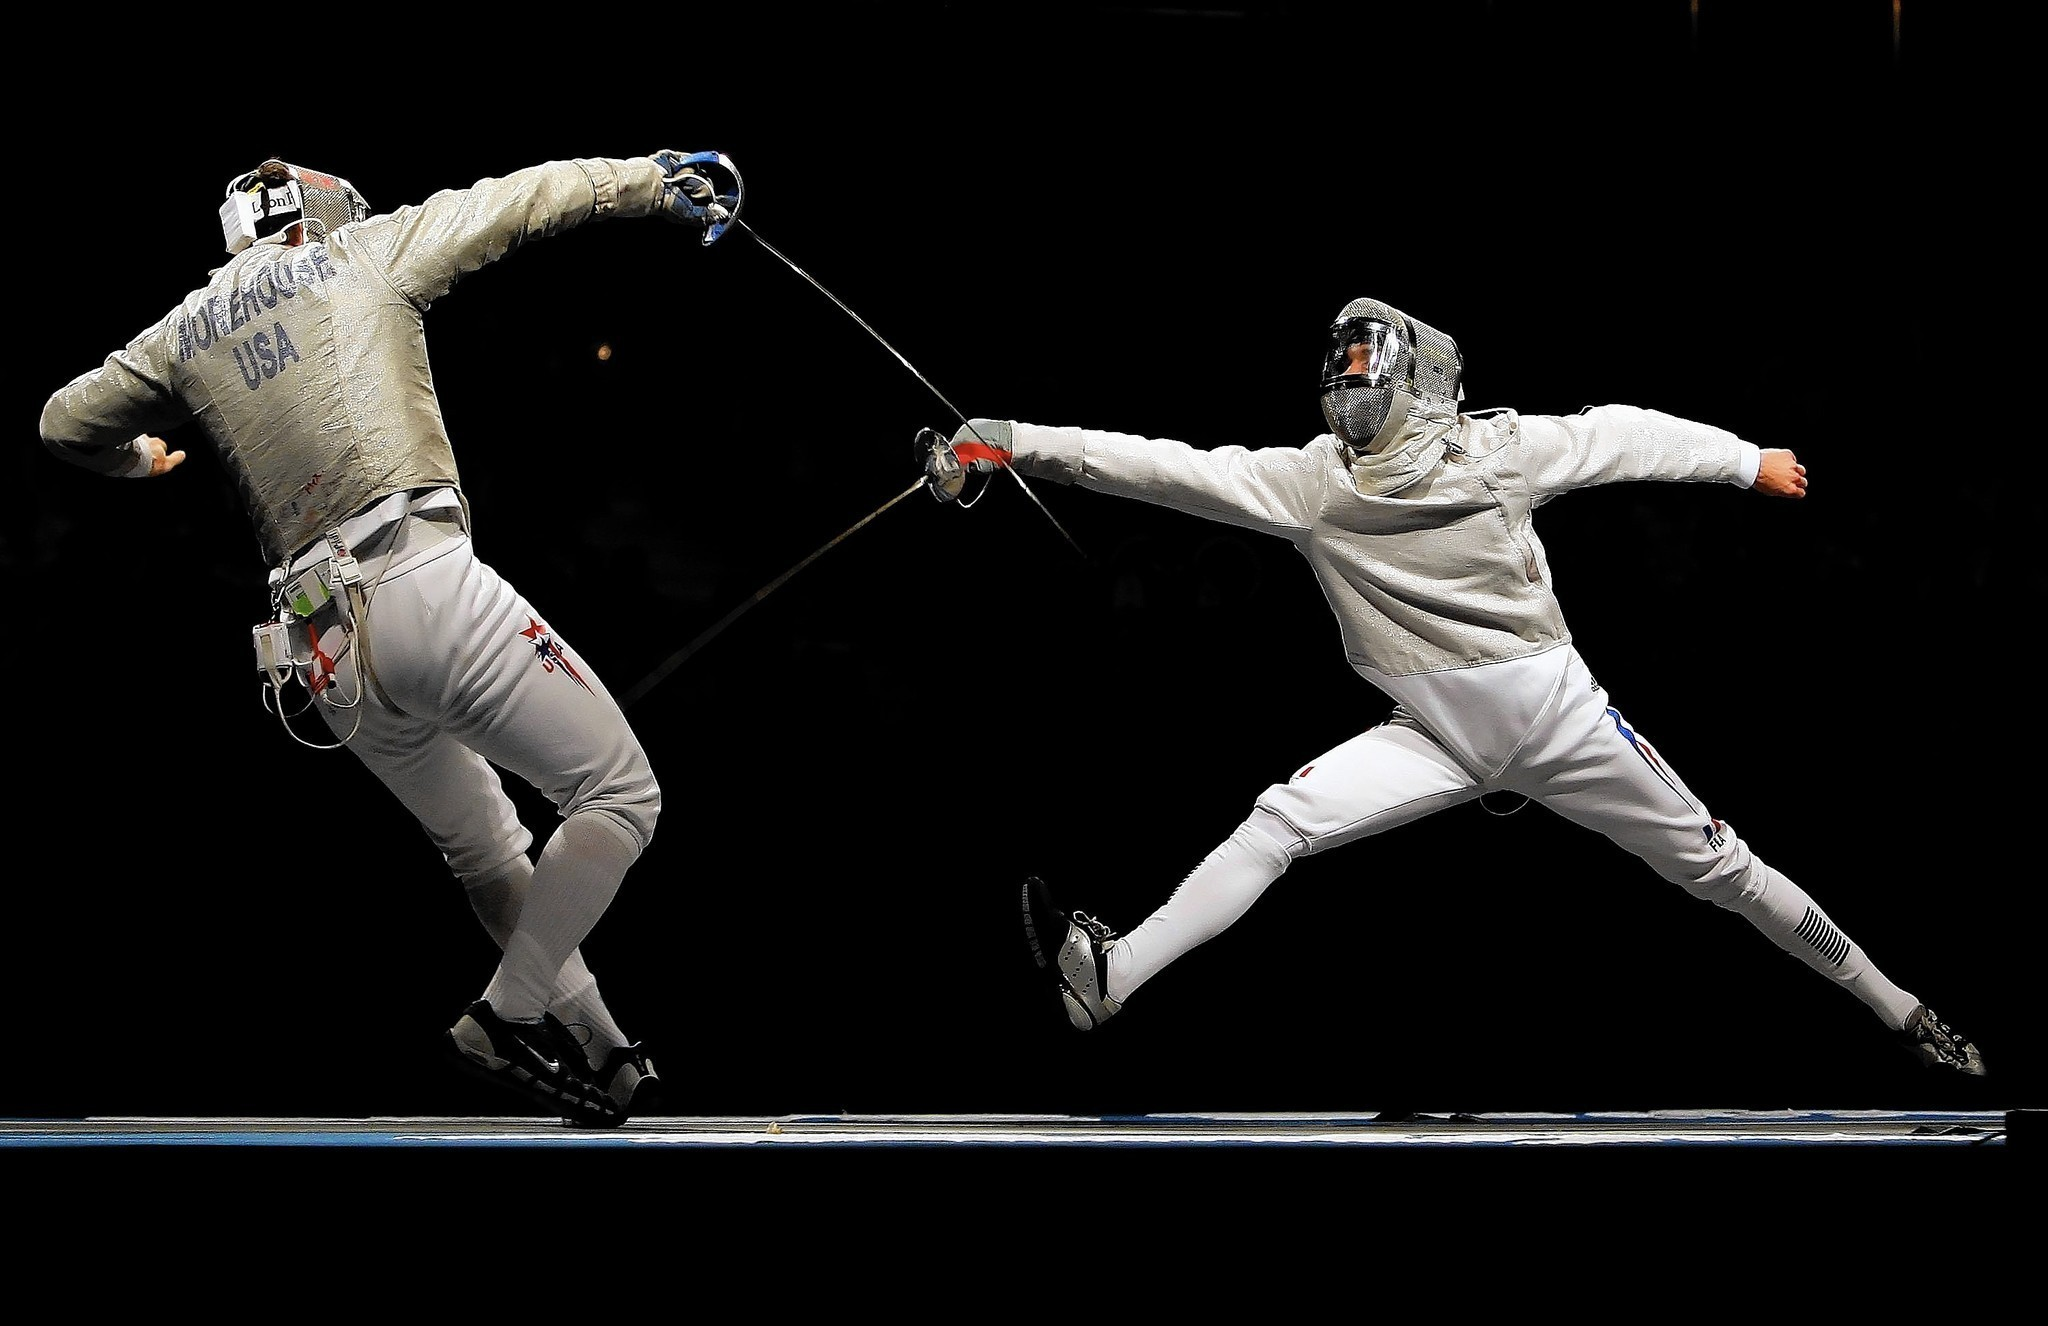 Fencing Quotes As A Workout Fencing Is An Alternative To The Gym  Chicago Tribune